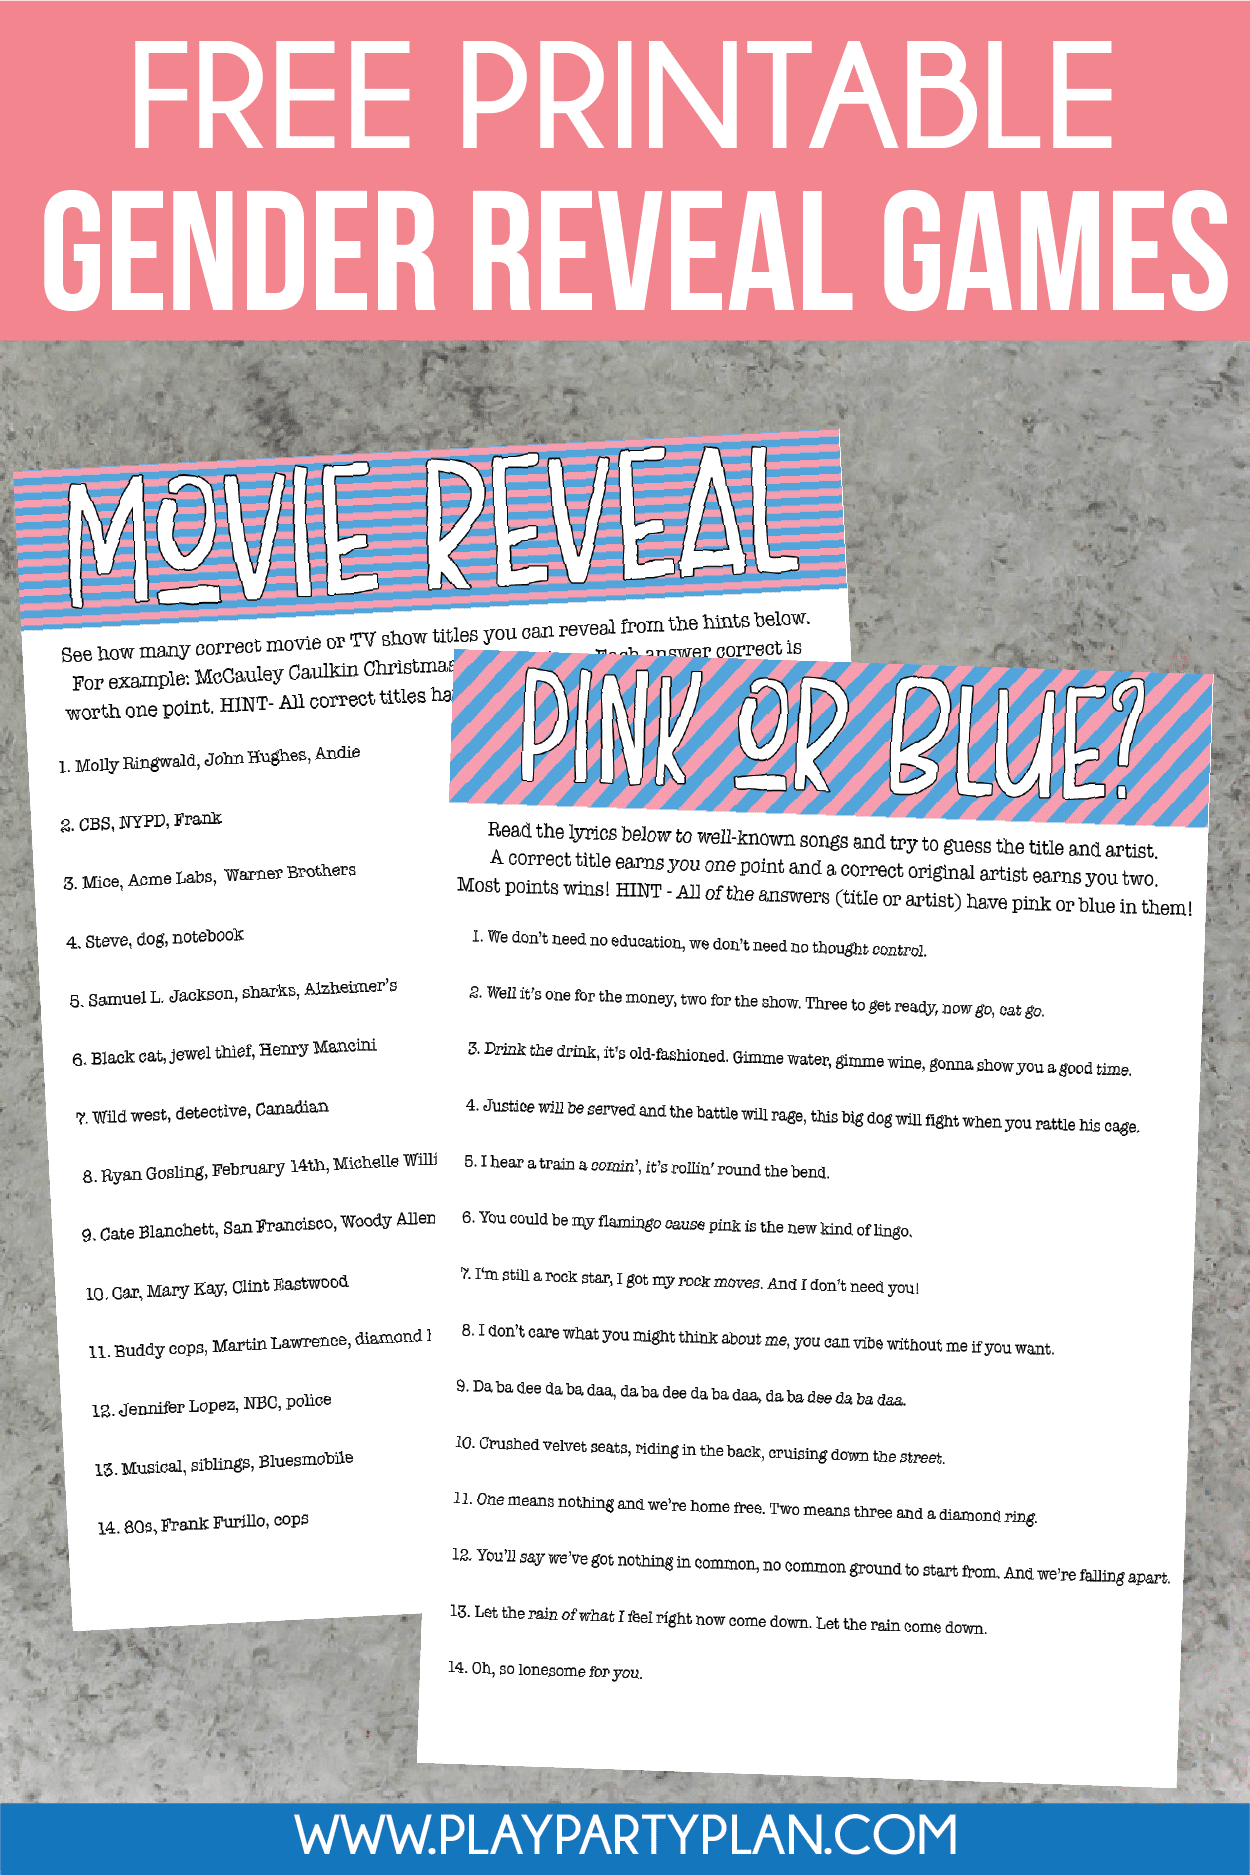 12 Of The Best Gender Reveal Party Games Ever - Play Party Plan - Free Printable Gender Reveal Games